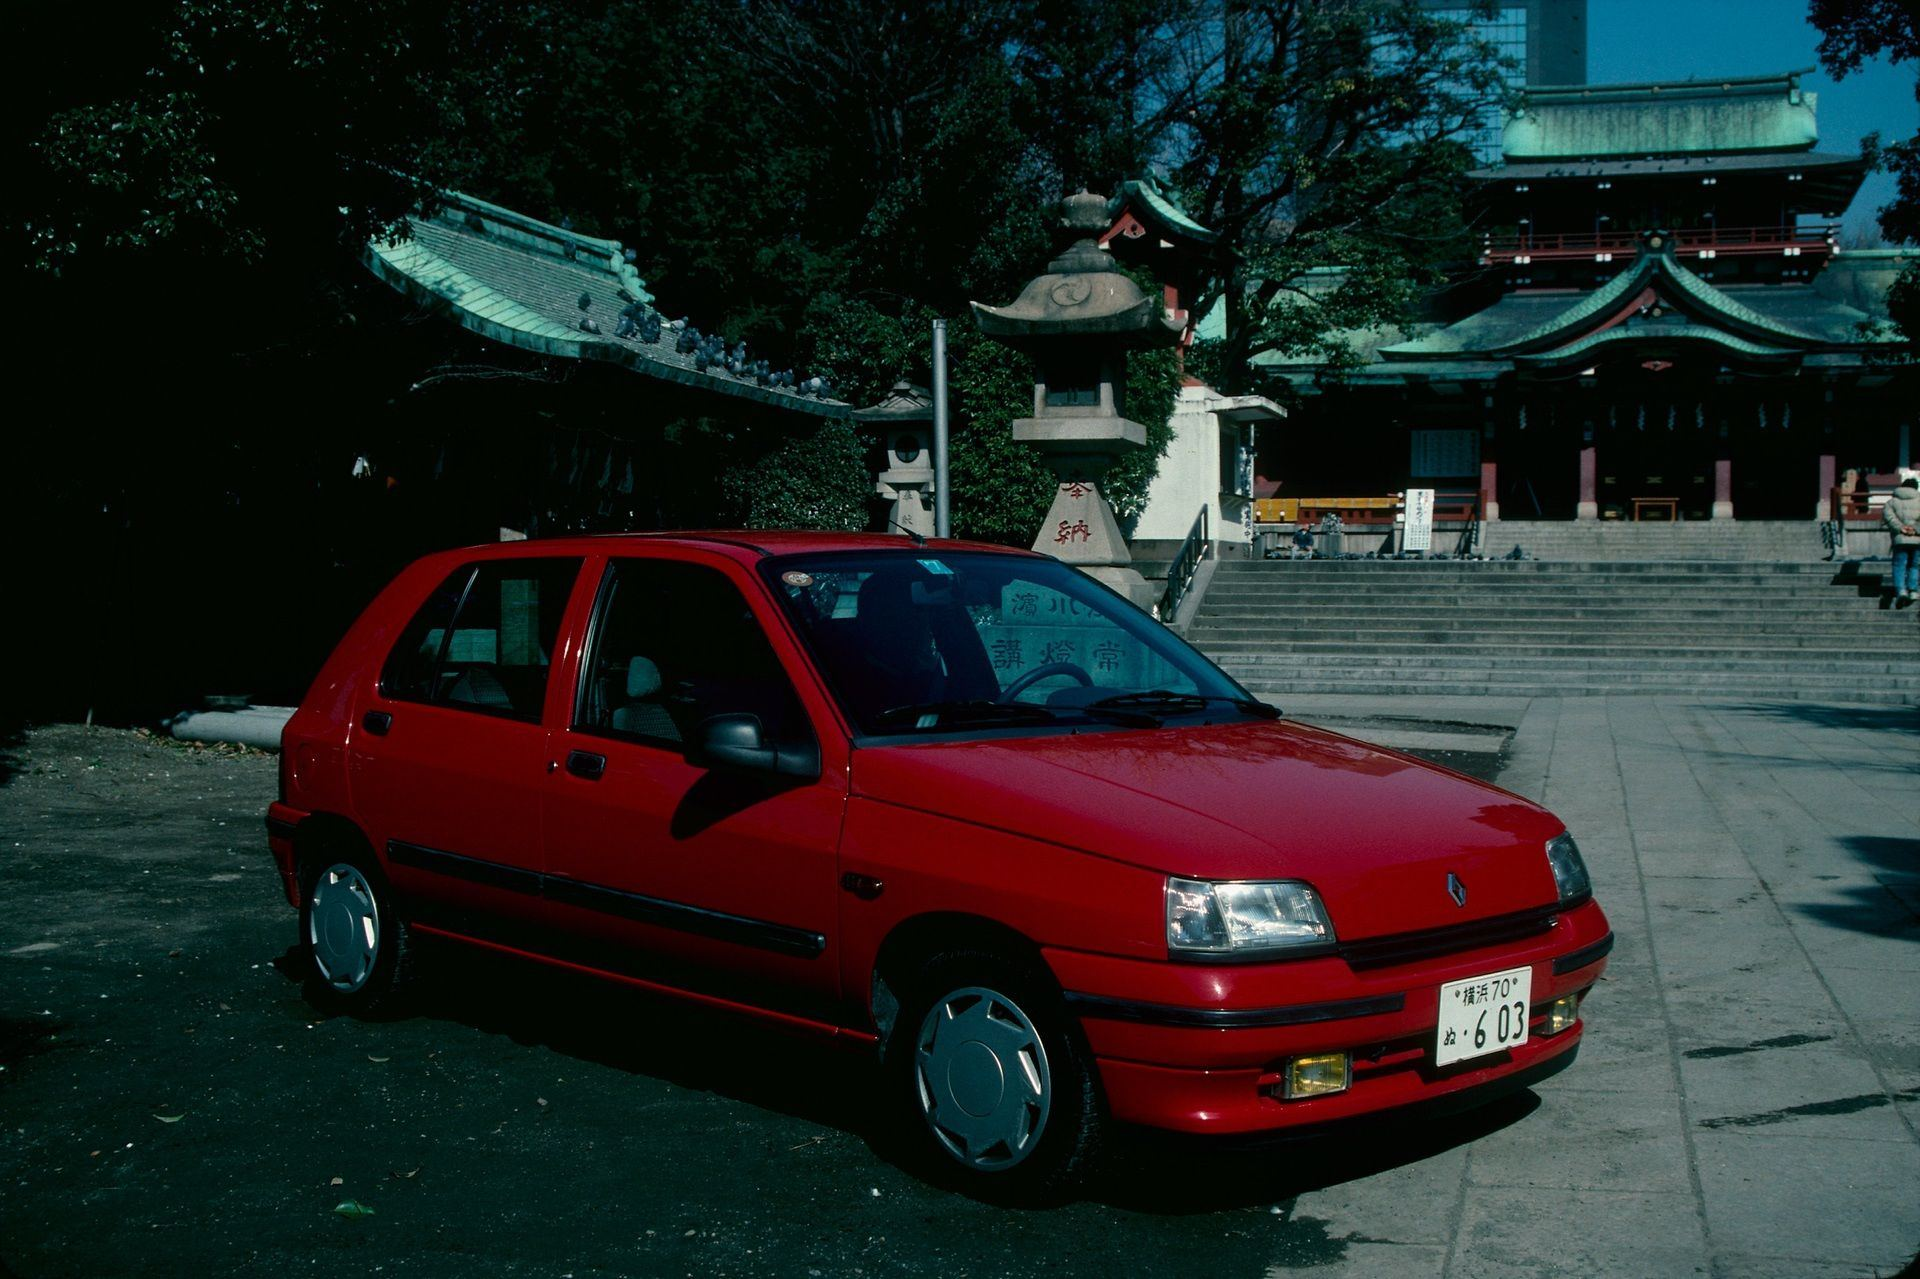 2020-30-years-of-Renault-CLIO-Renault-CLIO-I-1990-1999-24